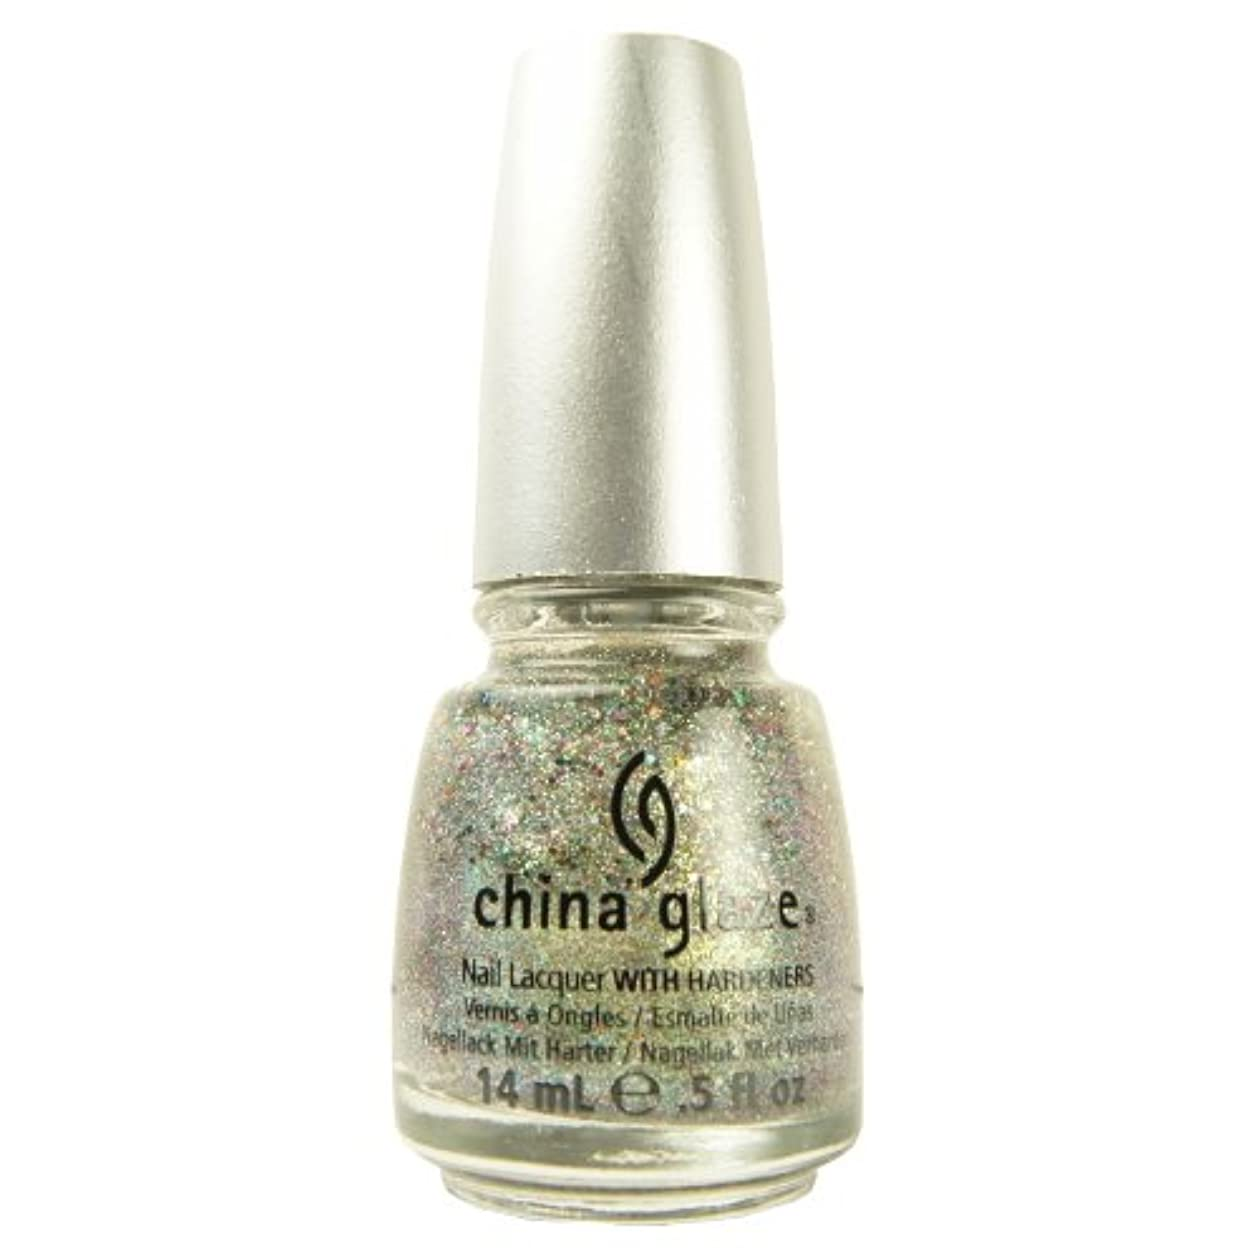 タイプ異常な人質(3 Pack) CHINA GLAZE Glitter Nail Lacquer with Nail Hardner - Ray-Diant (DC) (並行輸入品)